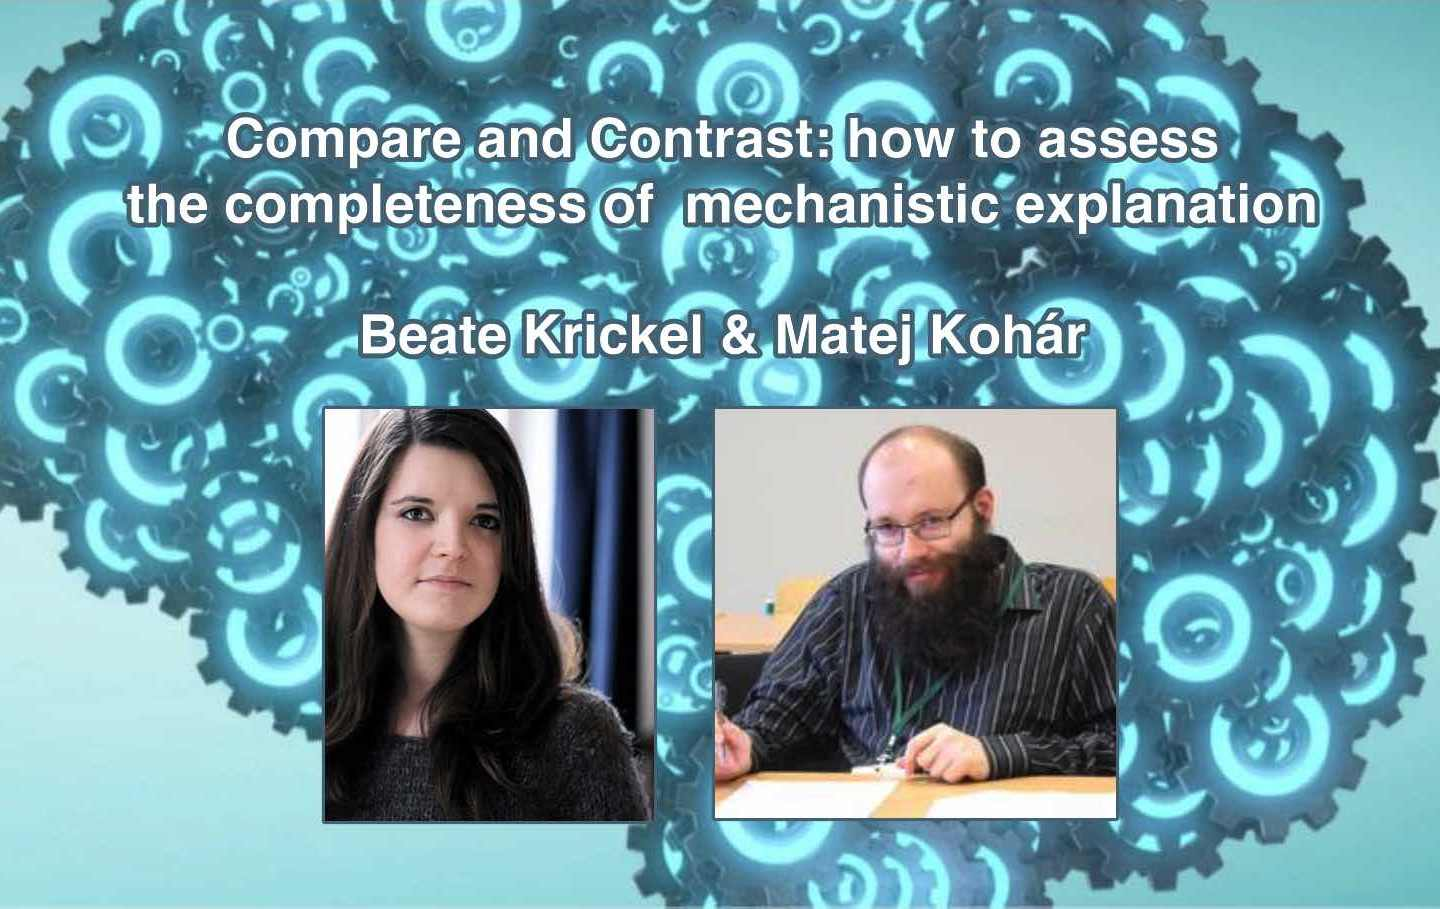 Beate Krickel and Matej Kohár on the Completeness of Mechanistic Explanation